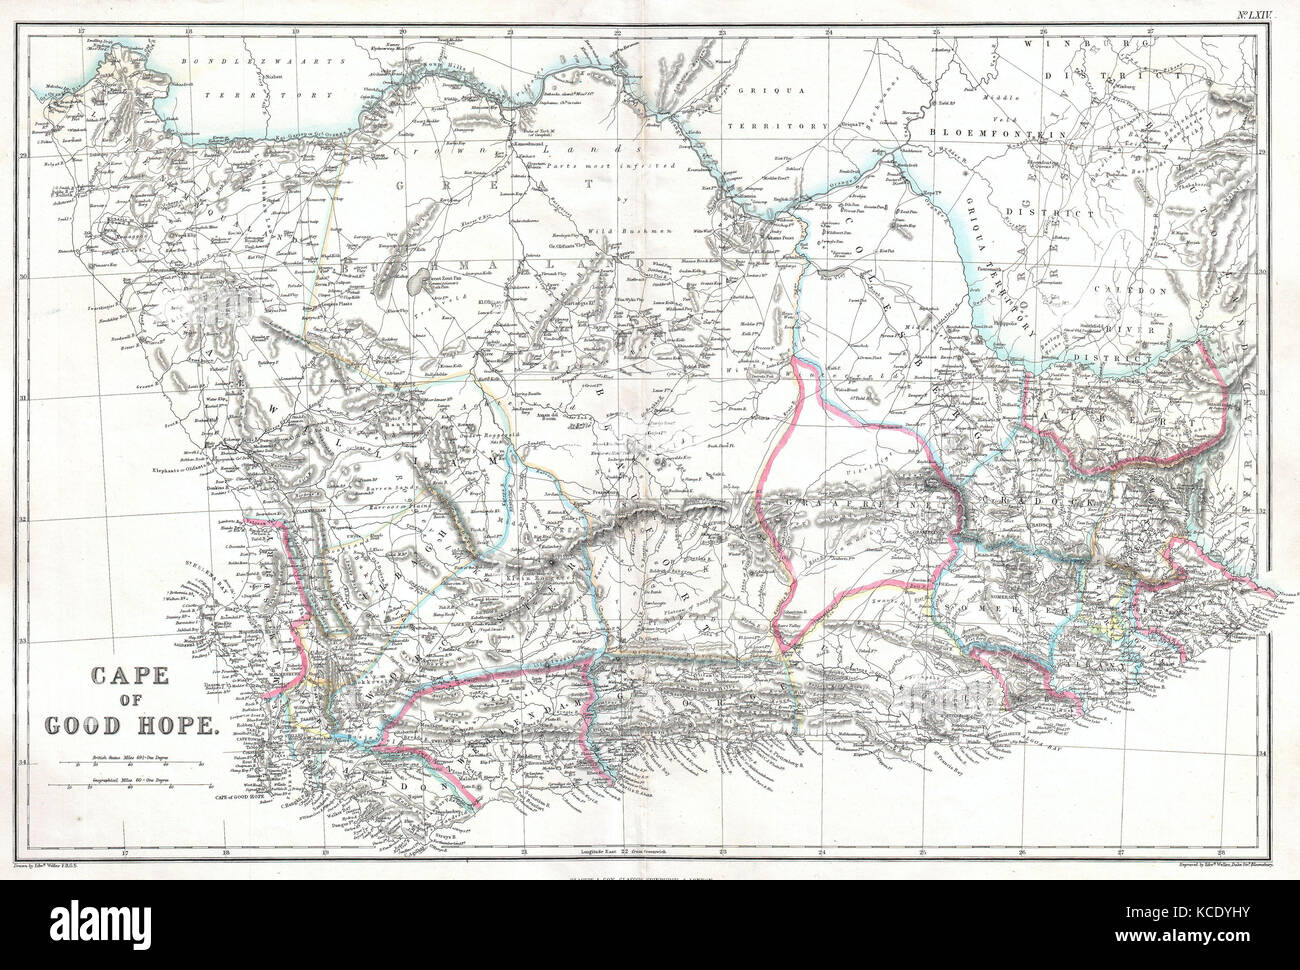 Cape Of Good Hope Map Stock Photos & Cape Of Good Hope Map Stock ...